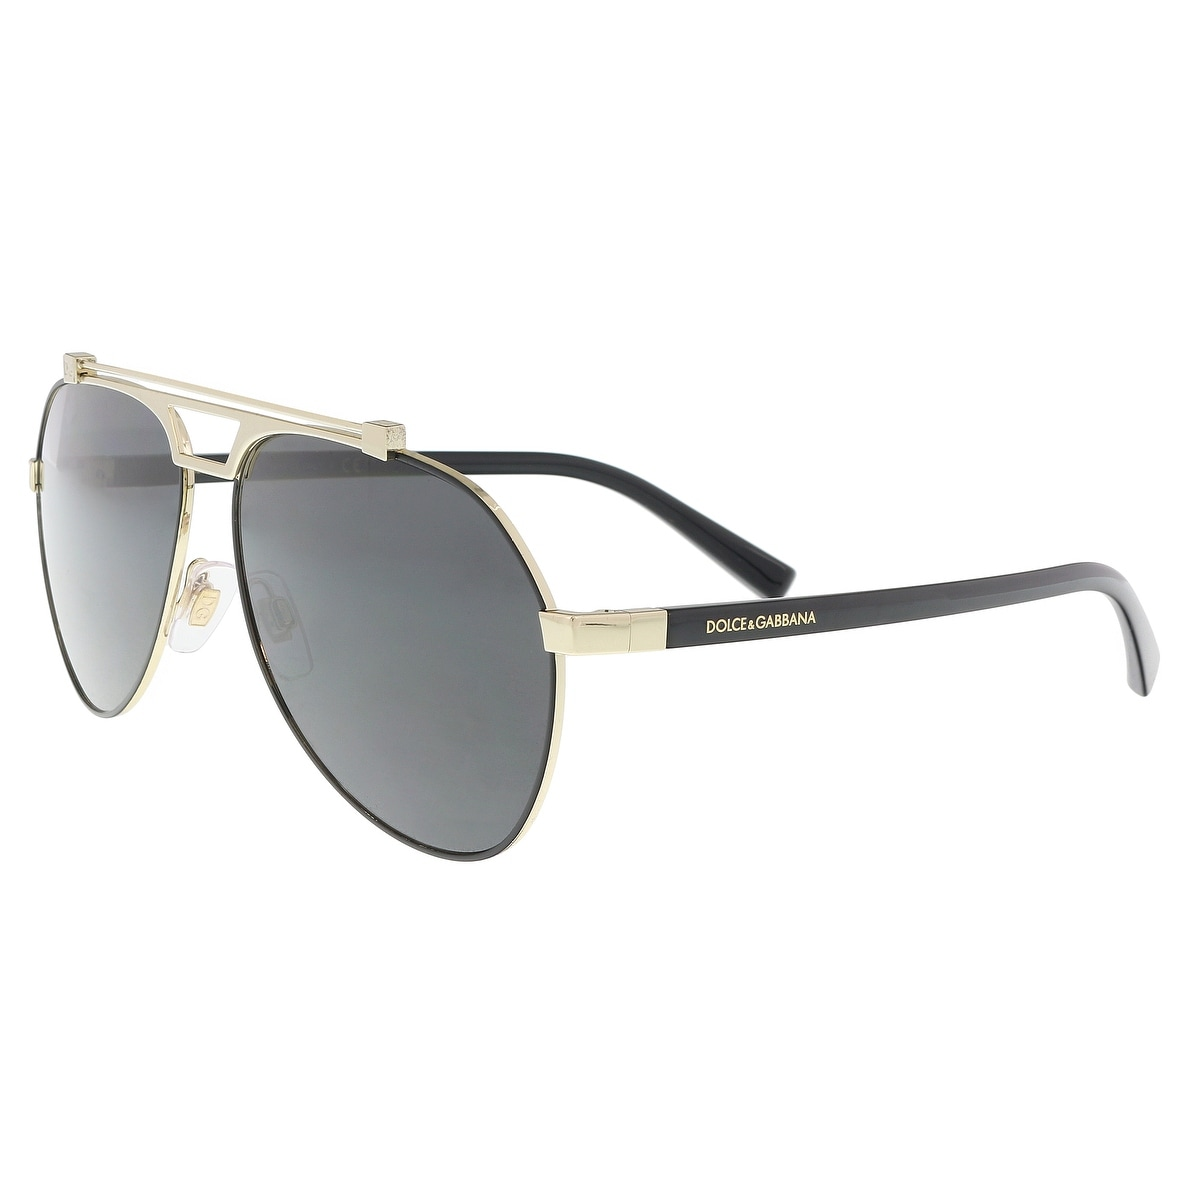 8a3daaf51672 Shop Dolce   Gabbana DG2189 01 87 Matte Black  Pale Gold Aviator Sunglasses  - 61-14-140 - Free Shipping Today - Overstock - 21158701